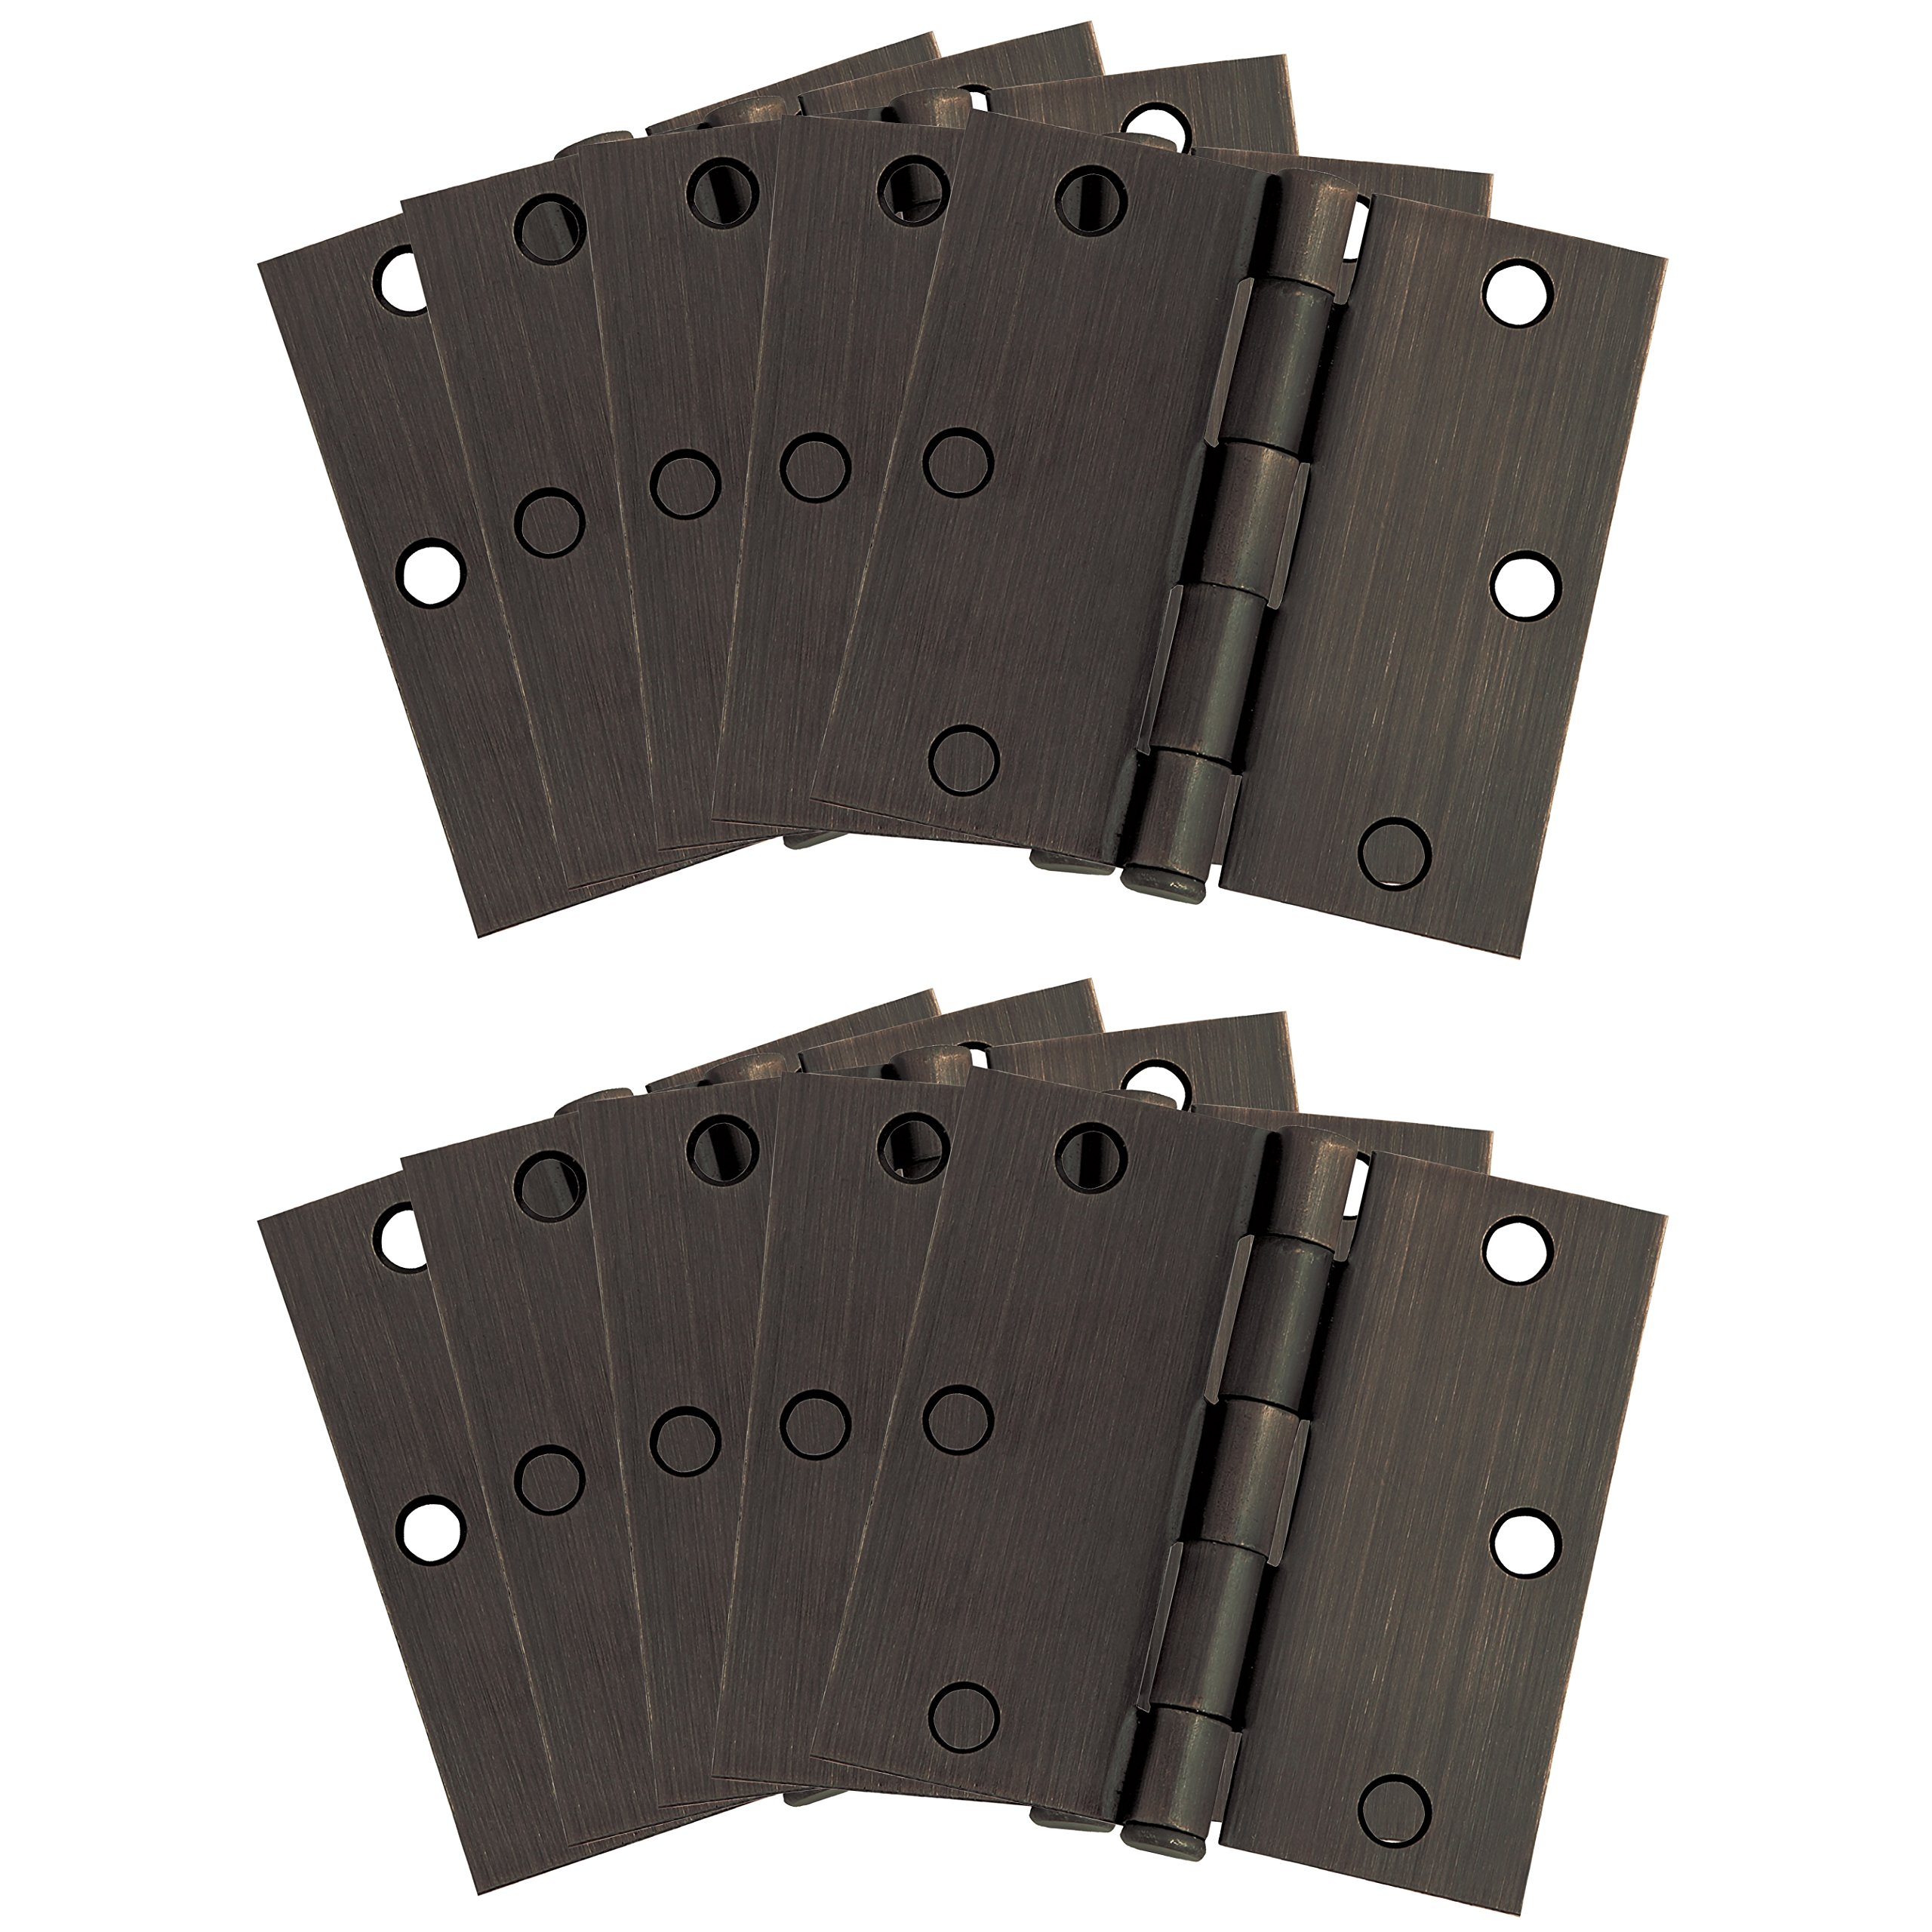 Design House 181503 10-Pack Square Hinge 3.5'', Oil Rubbed Bronze